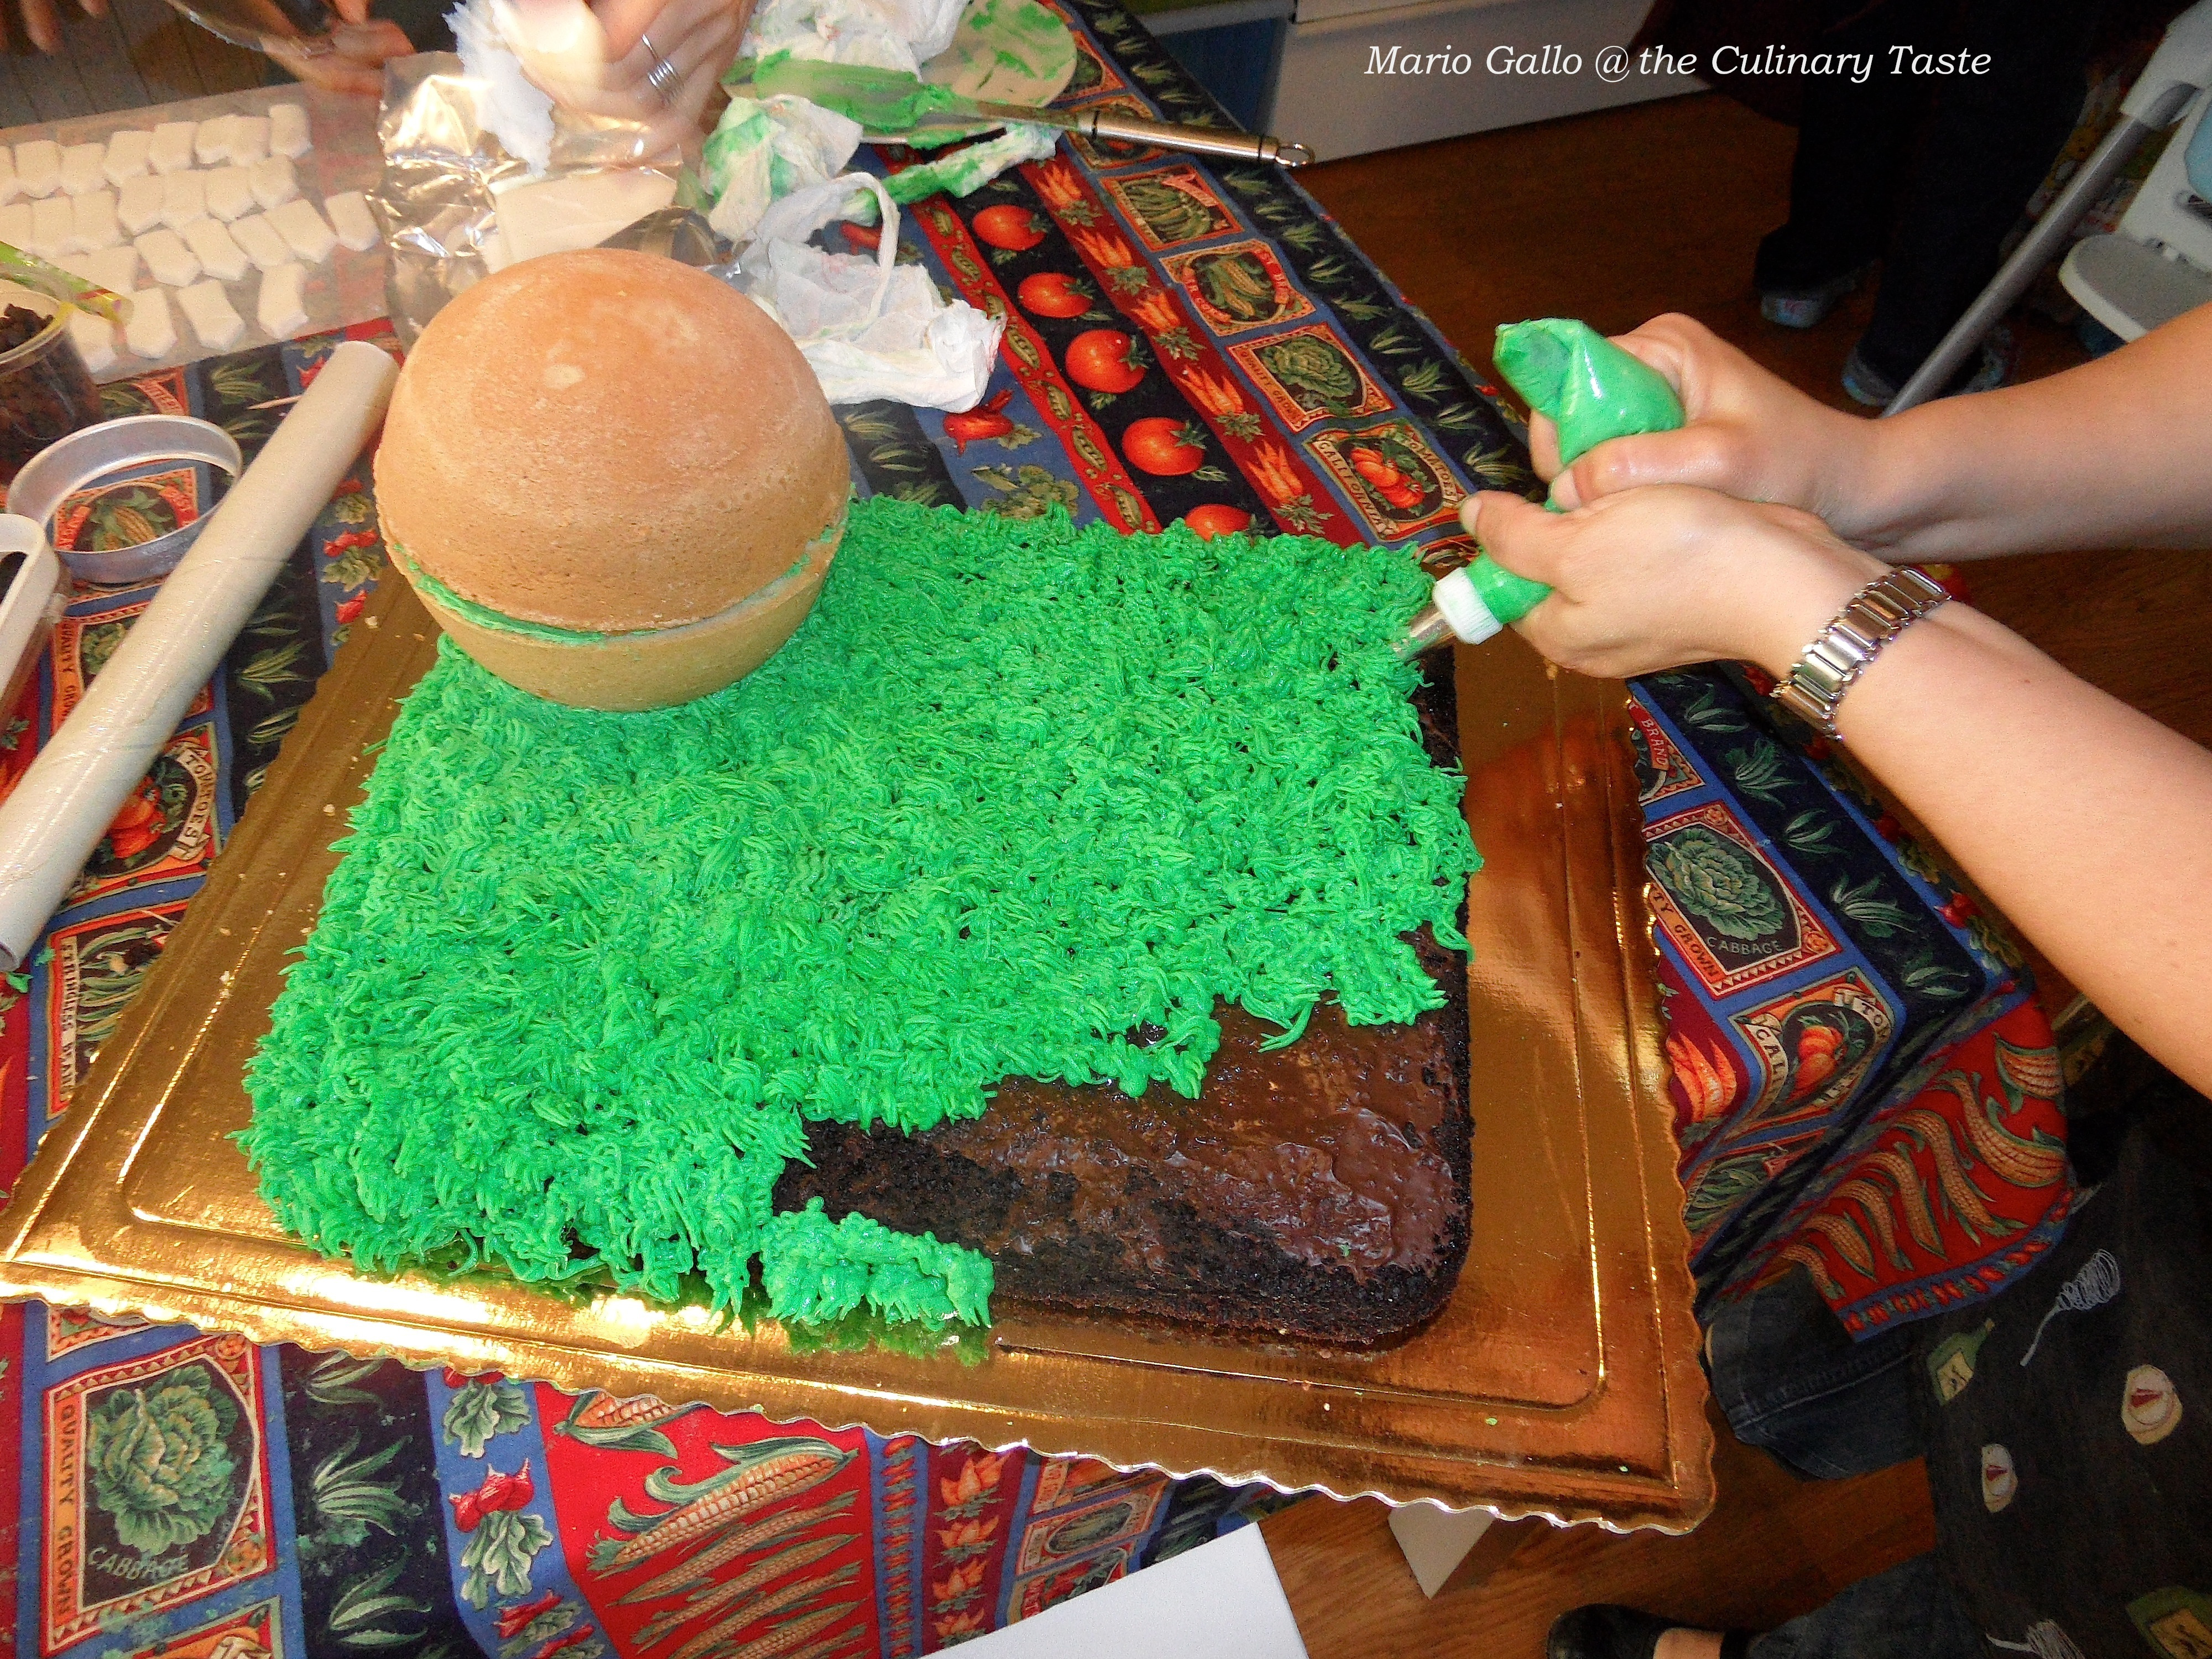 Cake Design Prato : The Chick in the Mead: an Over-in-the-Meadow Birthday Cake ...